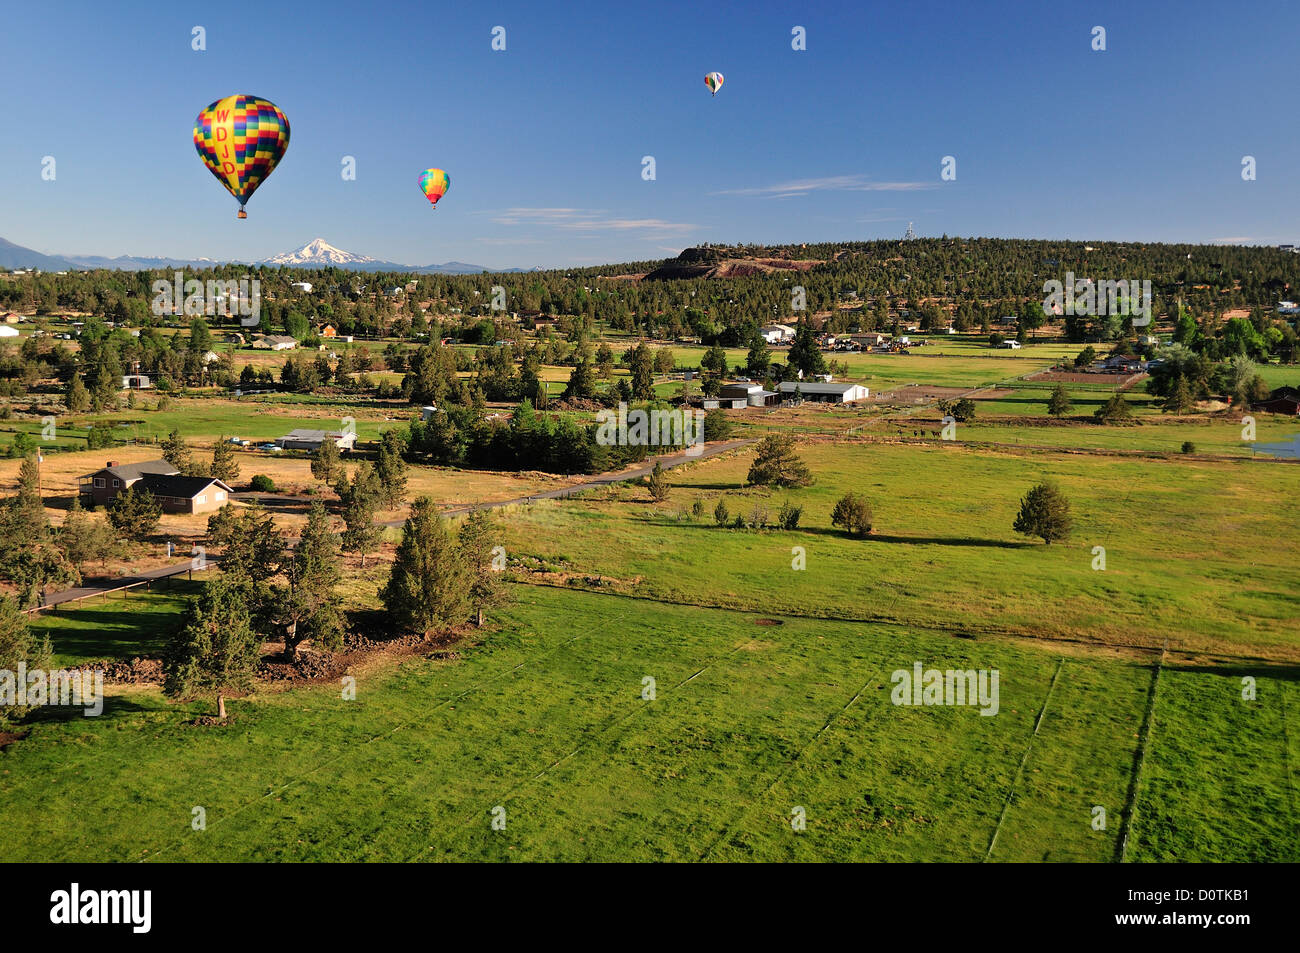 Countryside green pasture mount jefferson balloons Usa countryside pictures